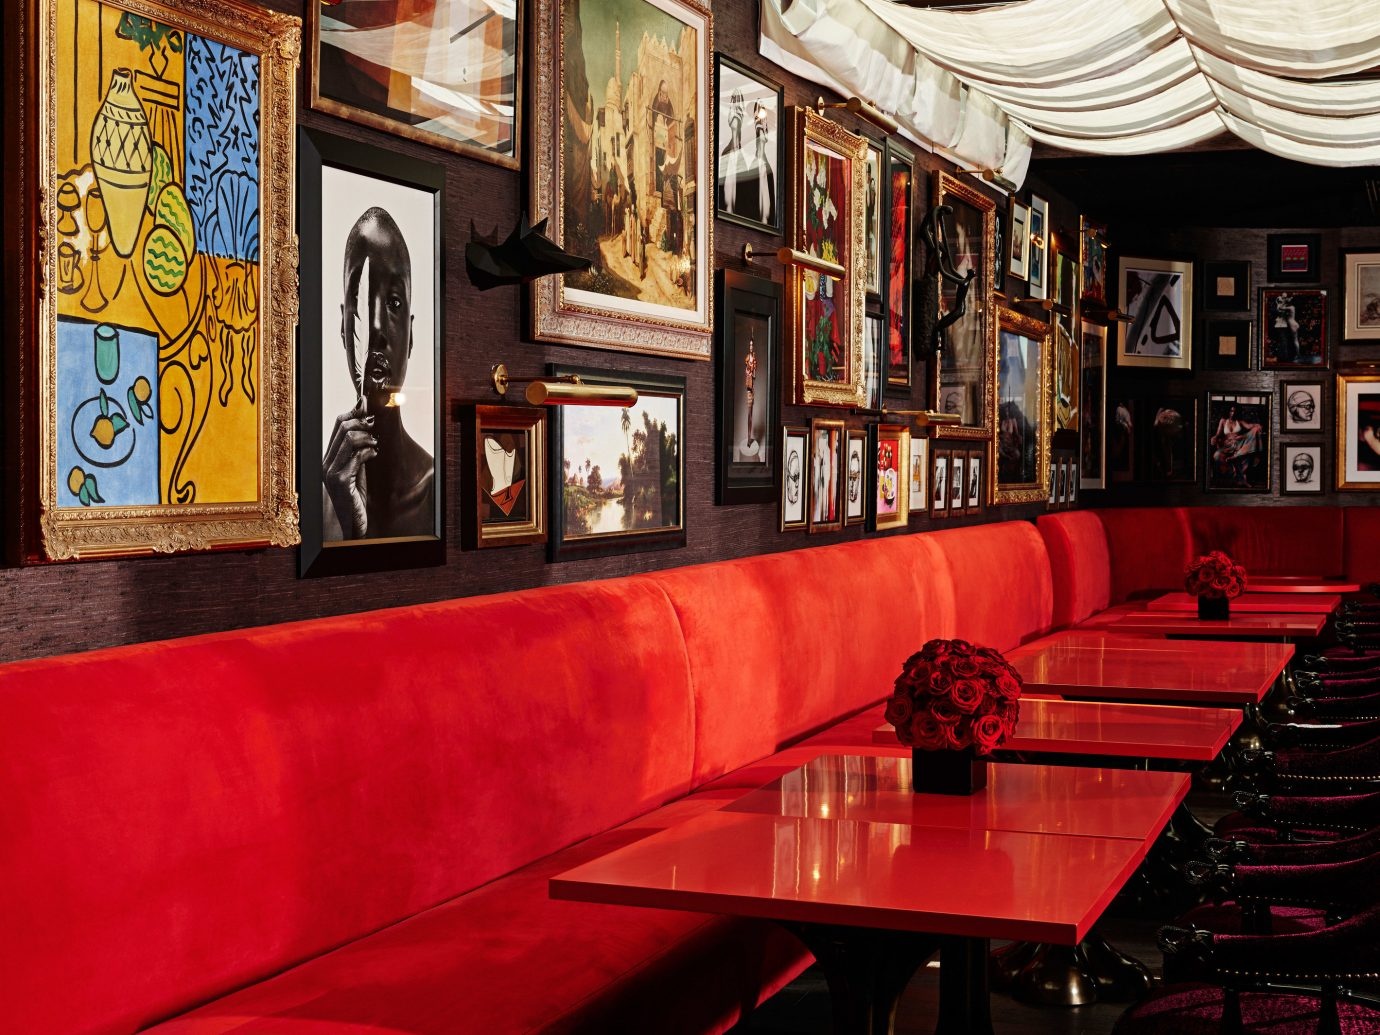 Hotels indoor Bar restaurant red interior design